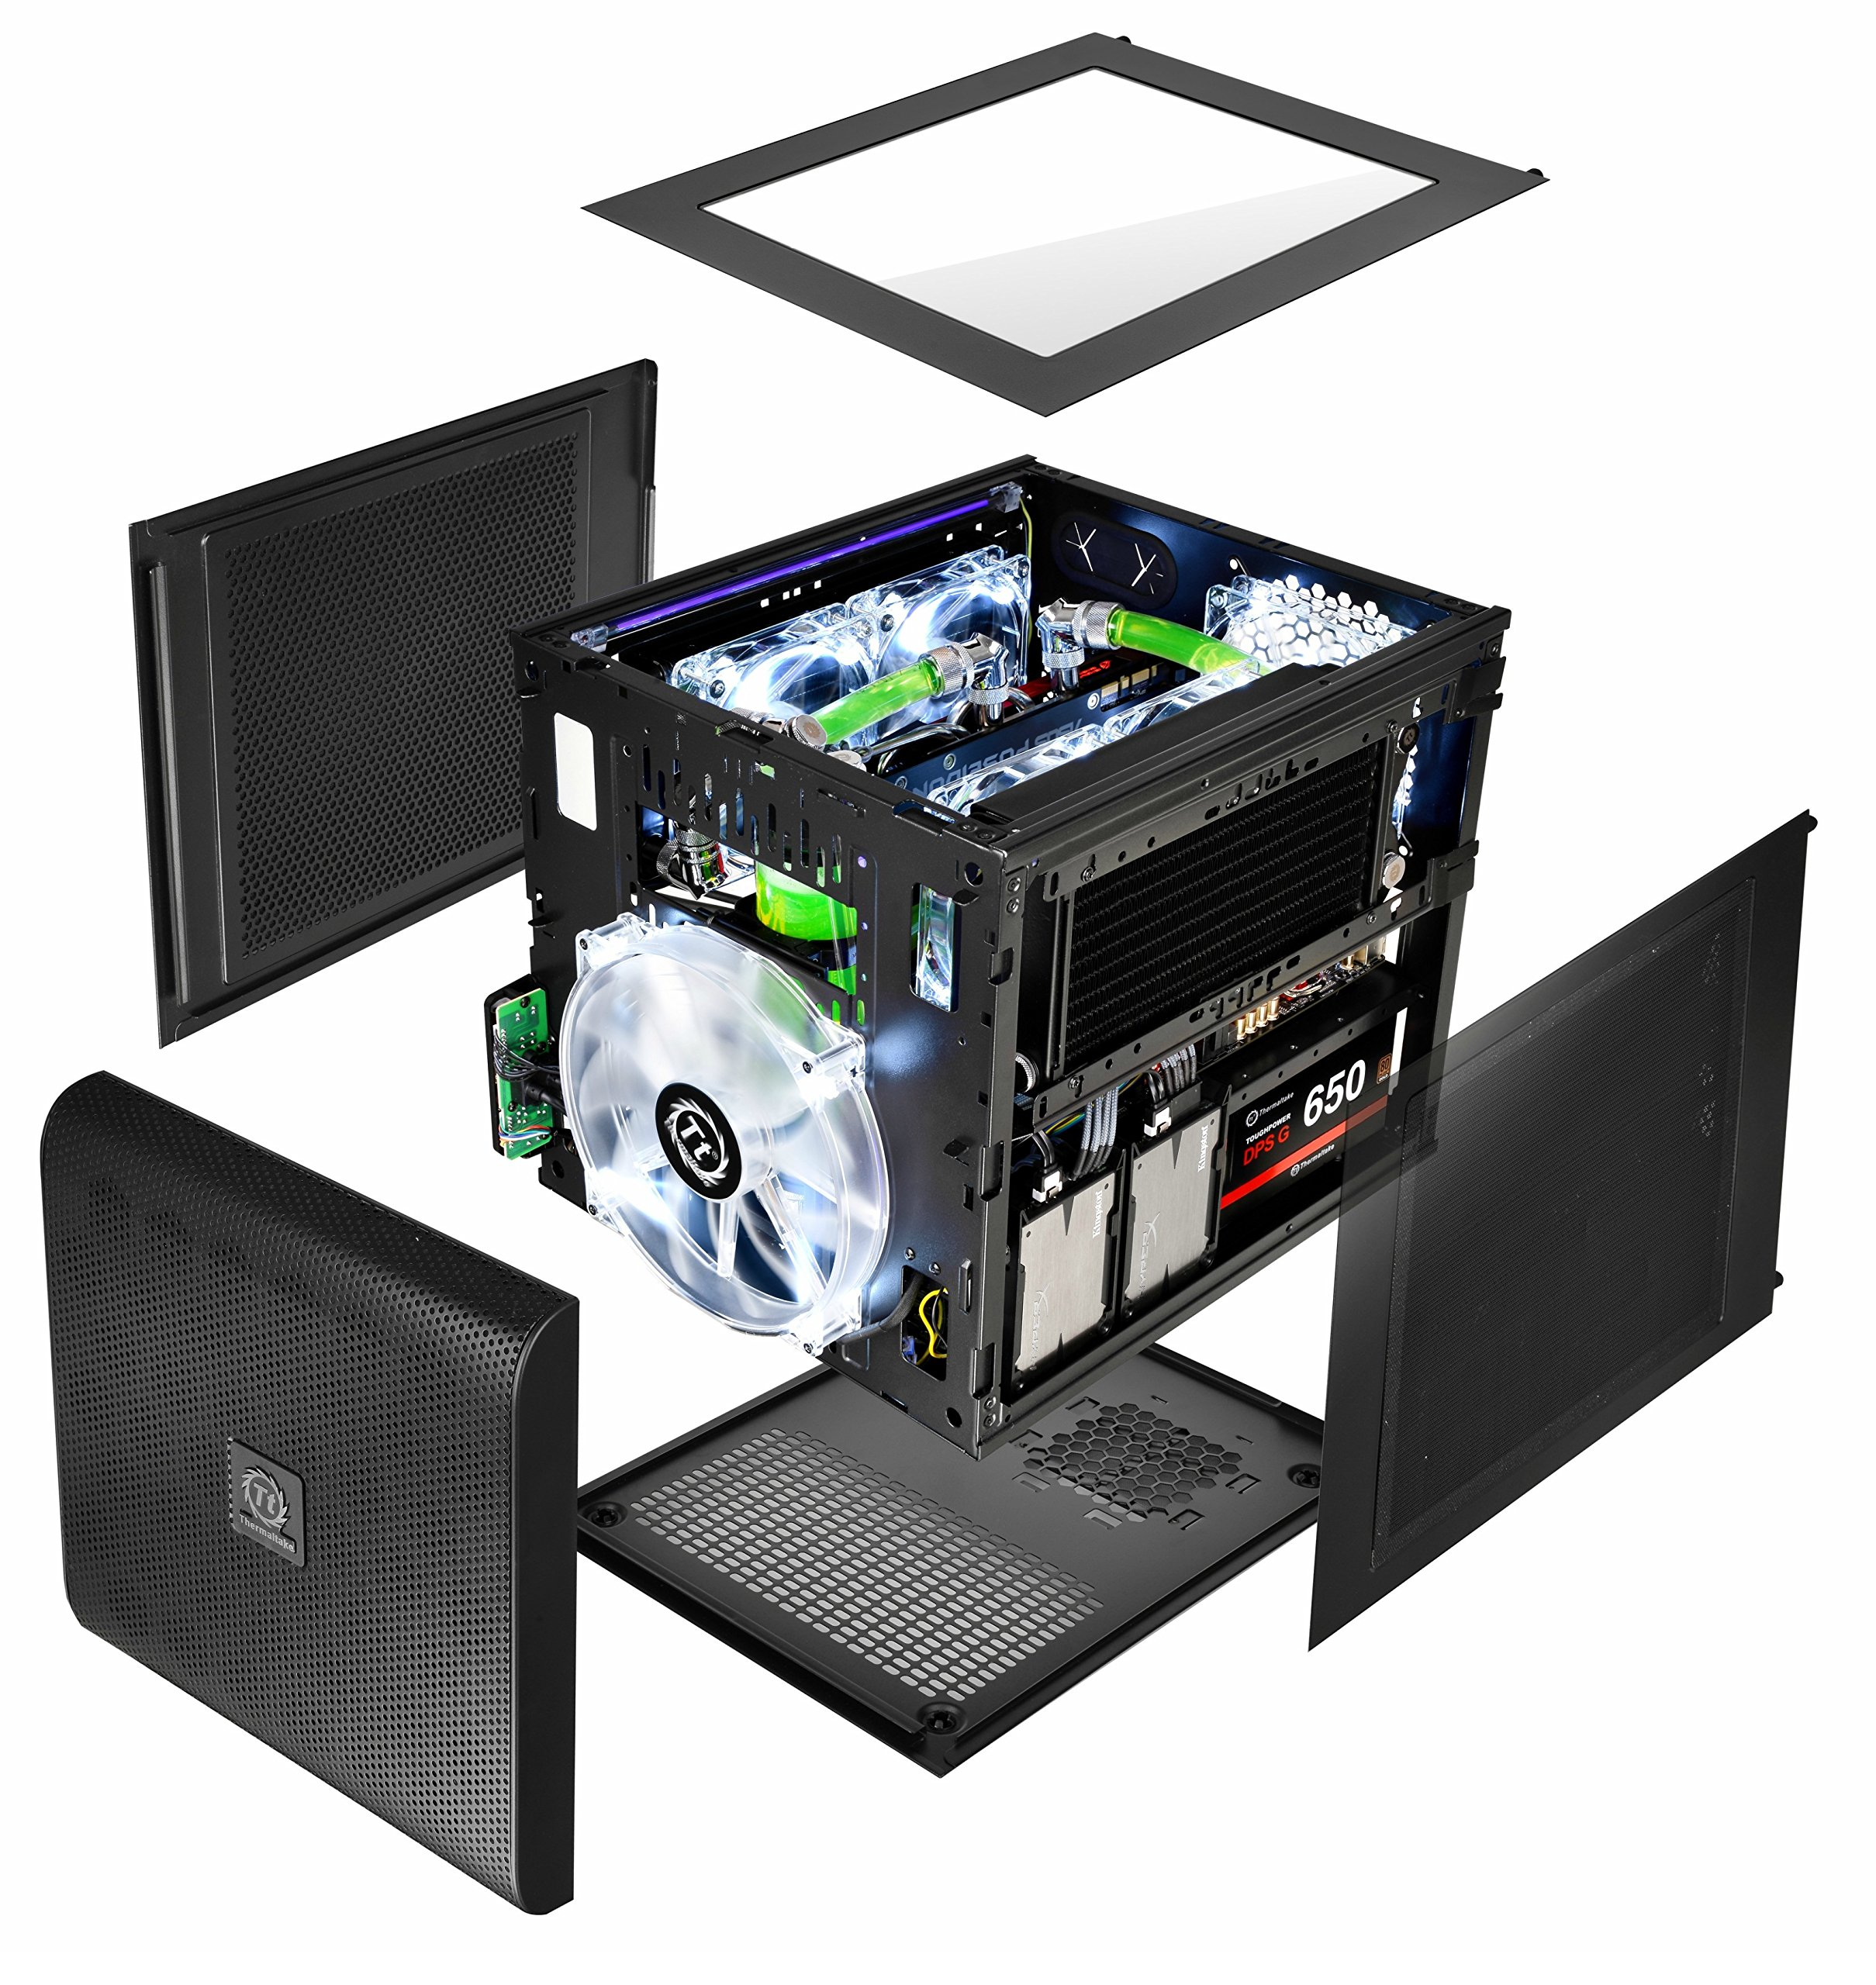 Thermaltake Core V21 SPCC Micro ATX, Mini ITX Cube Gaming Computer Case Chassis, Small Form Factor Builds, 200mm Front Fan Pre-installed, CA-1D5-00S1WN-00 by Thermaltake (Image #5)